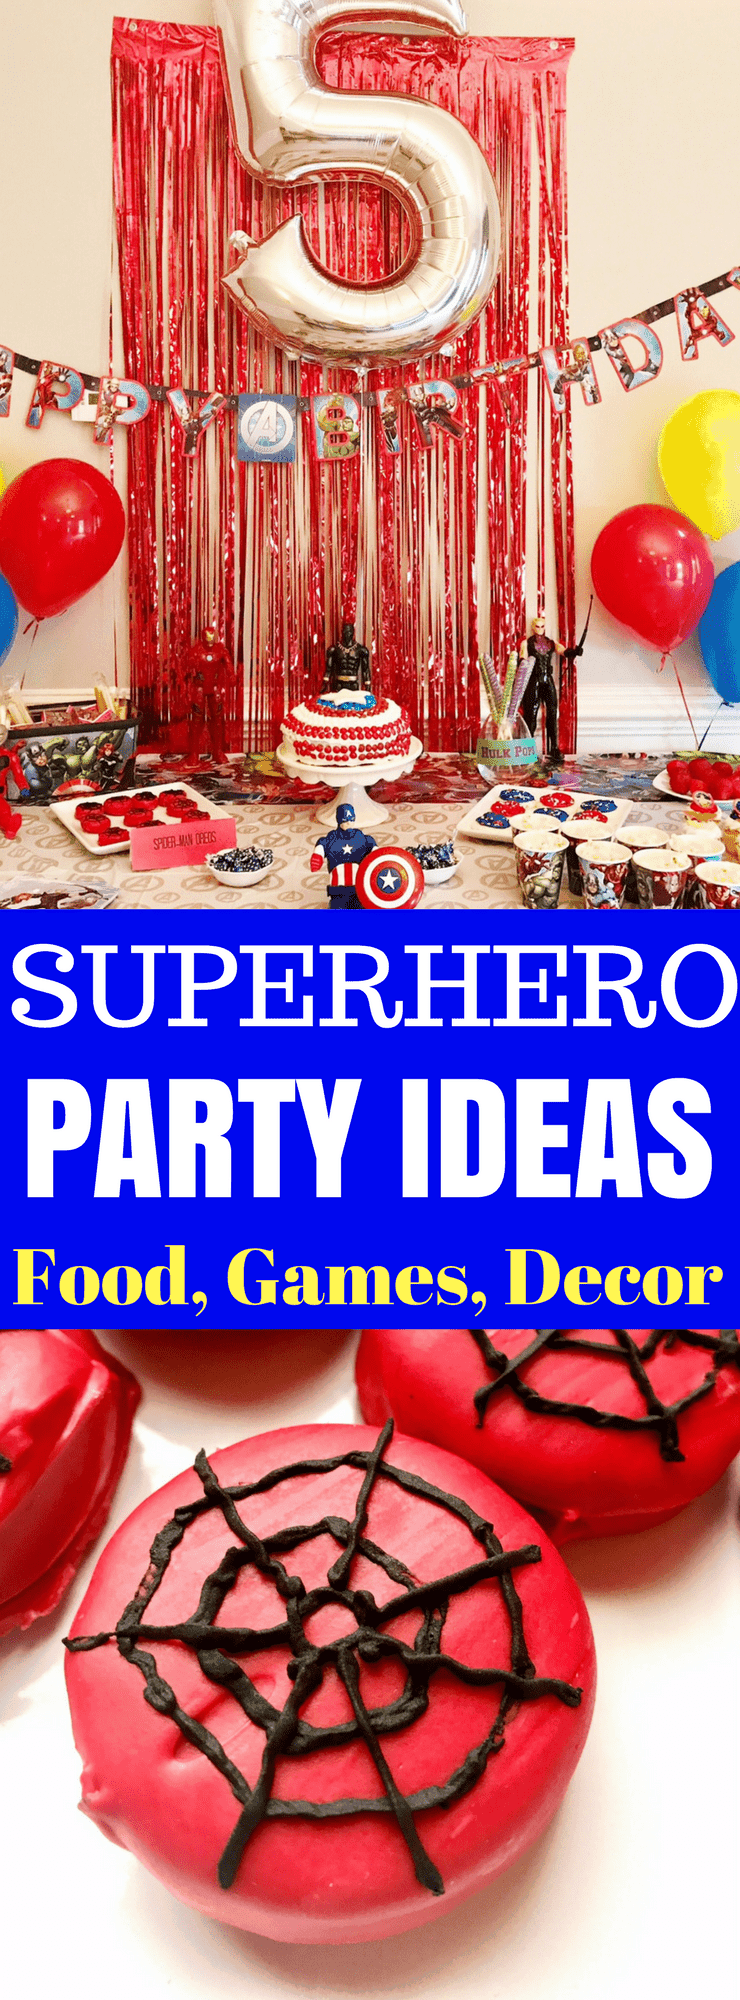 Superhero Party Ideas Avengers Party Games Decor Food Invitations